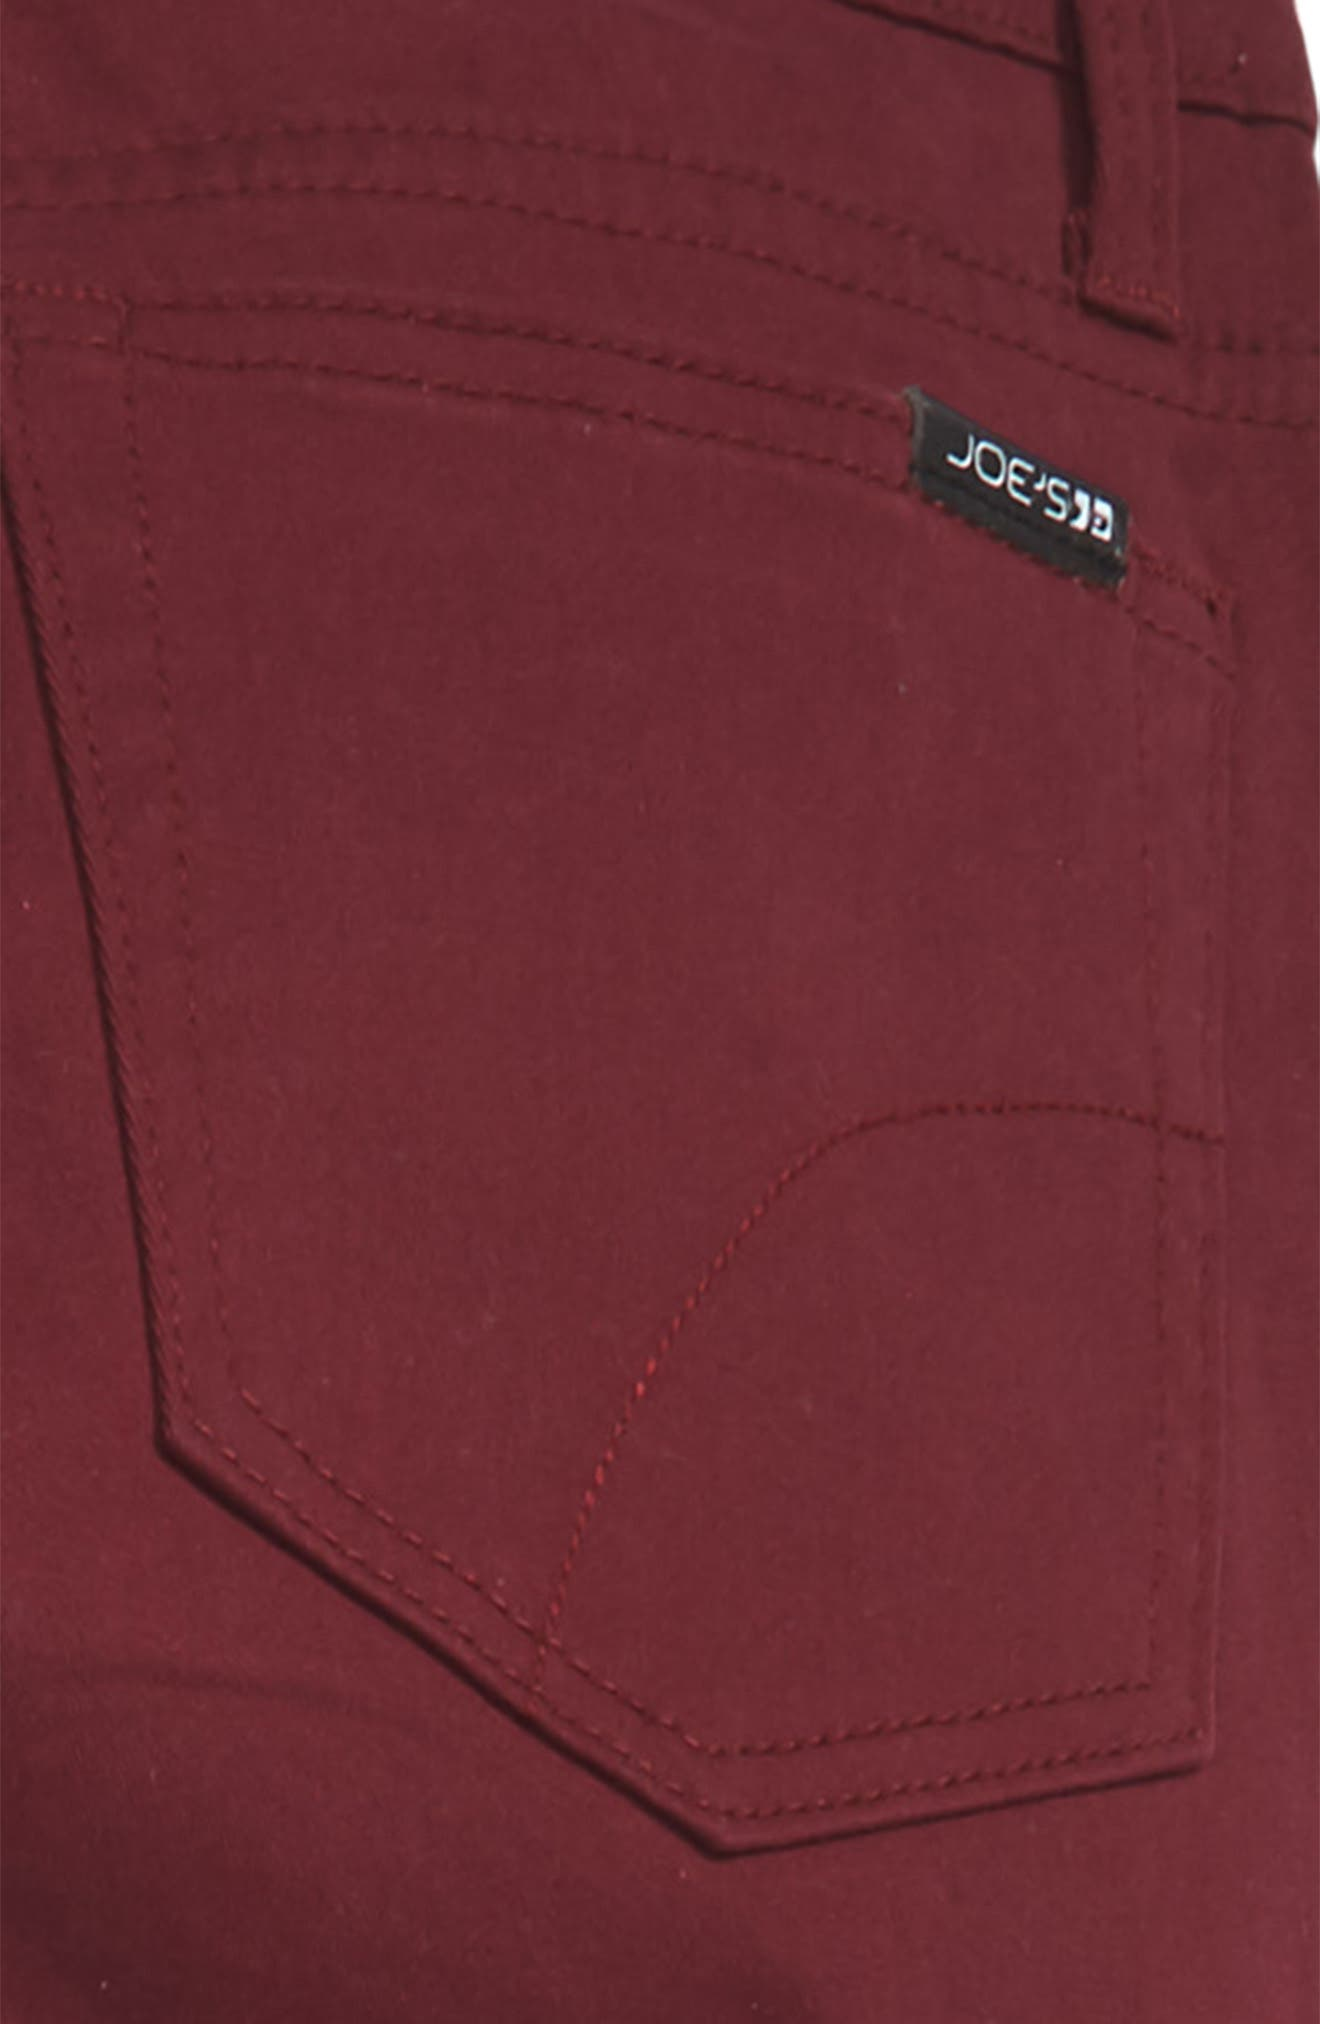 Brixton Straight Leg Stretch Twill Pants,                             Alternate thumbnail 3, color,                             930